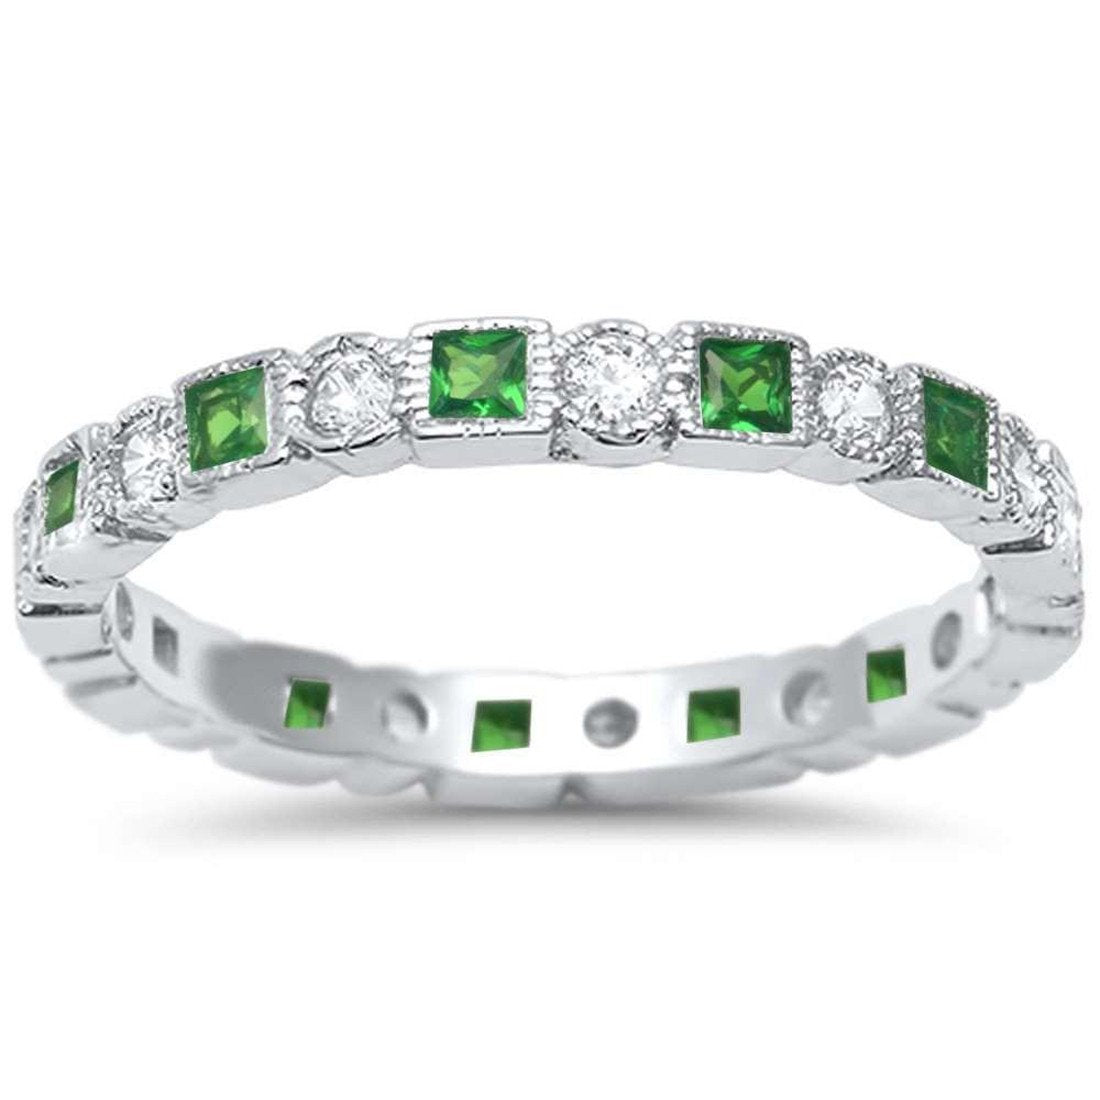 Bezel Set Full Eternity Ring Alternating Round Simulated Green Emerald CZ 925 Sterling Silver